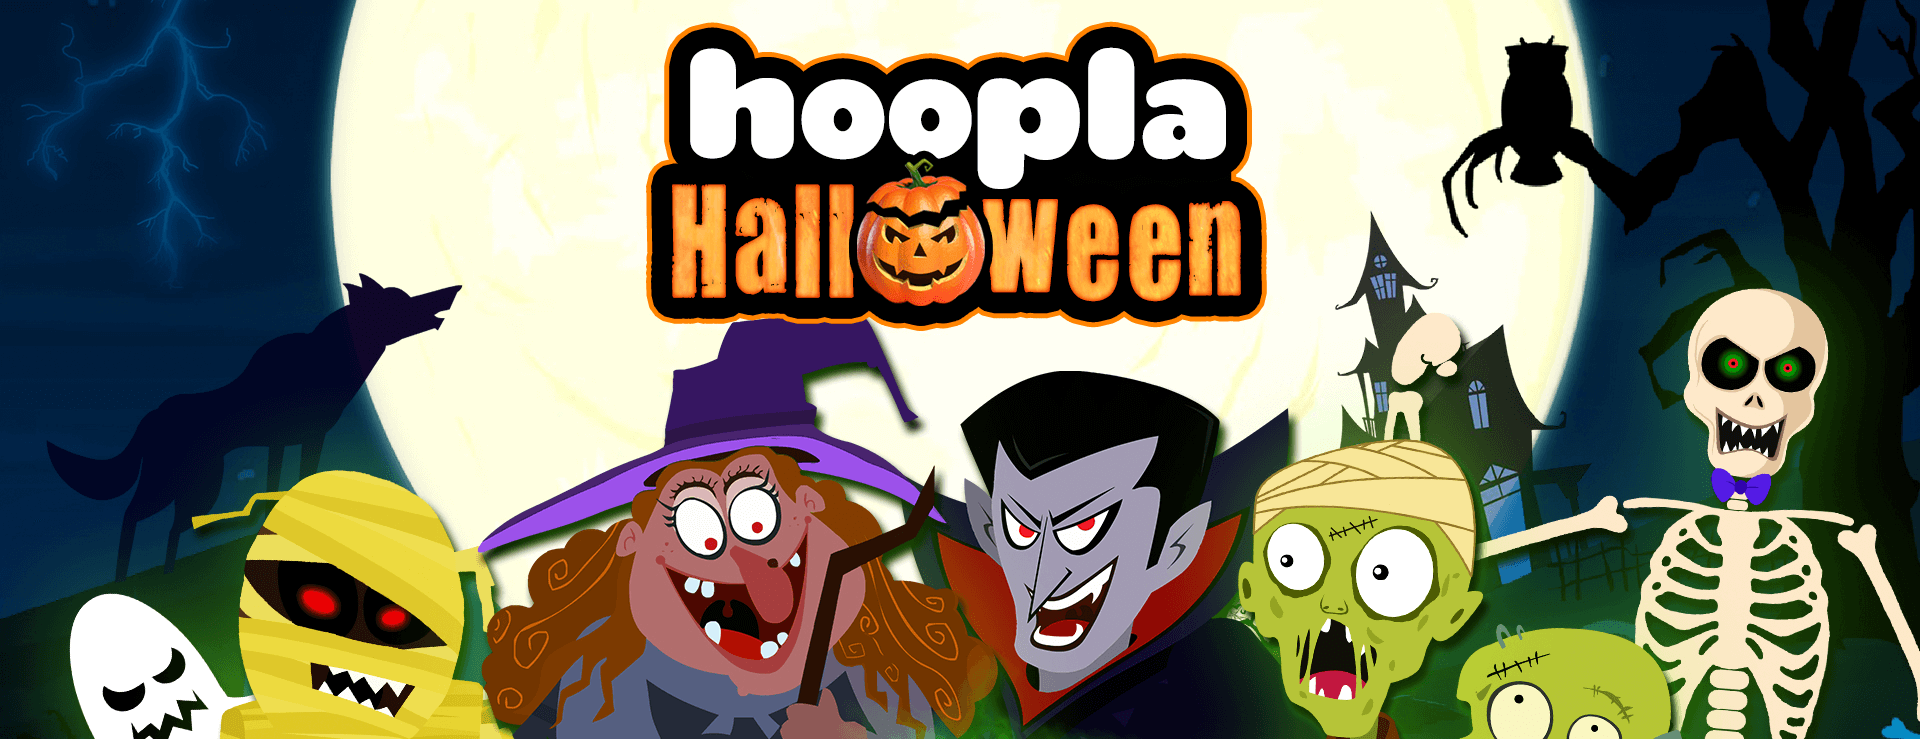 heroUnit_tv_hooplaHalloween